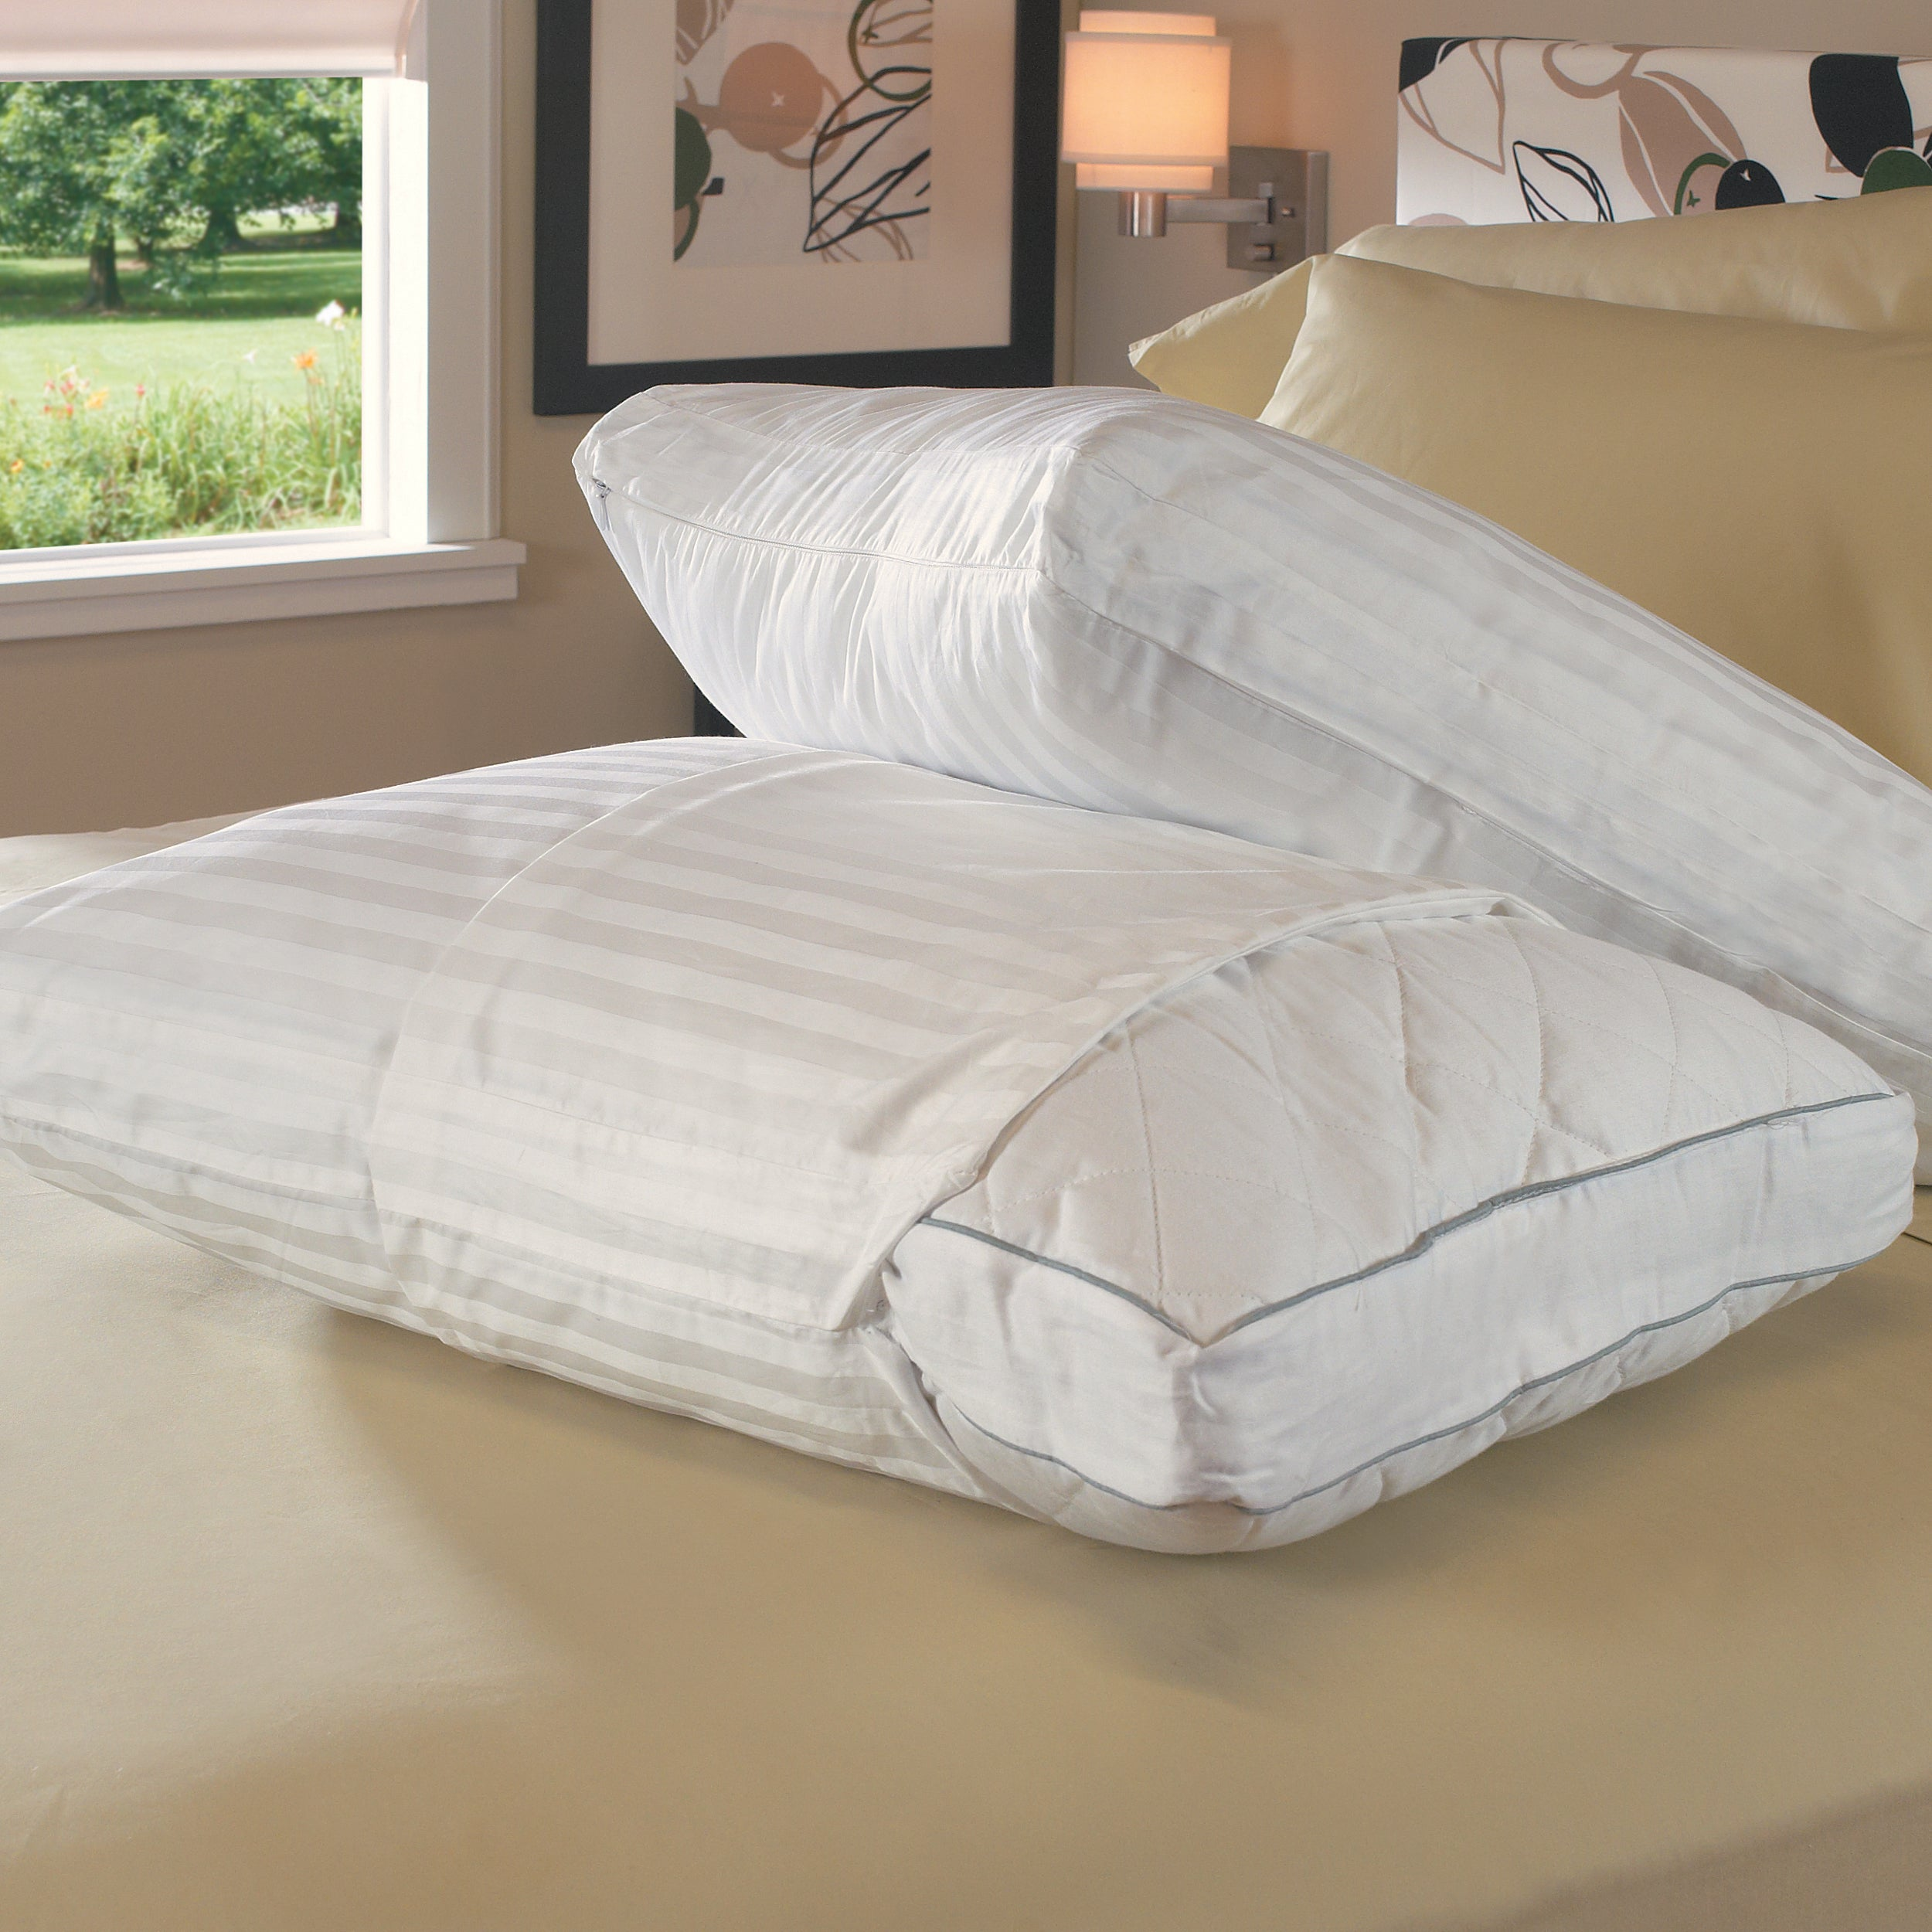 shop rest fresh antimicrobial 400 thread count gusseted zip pillow